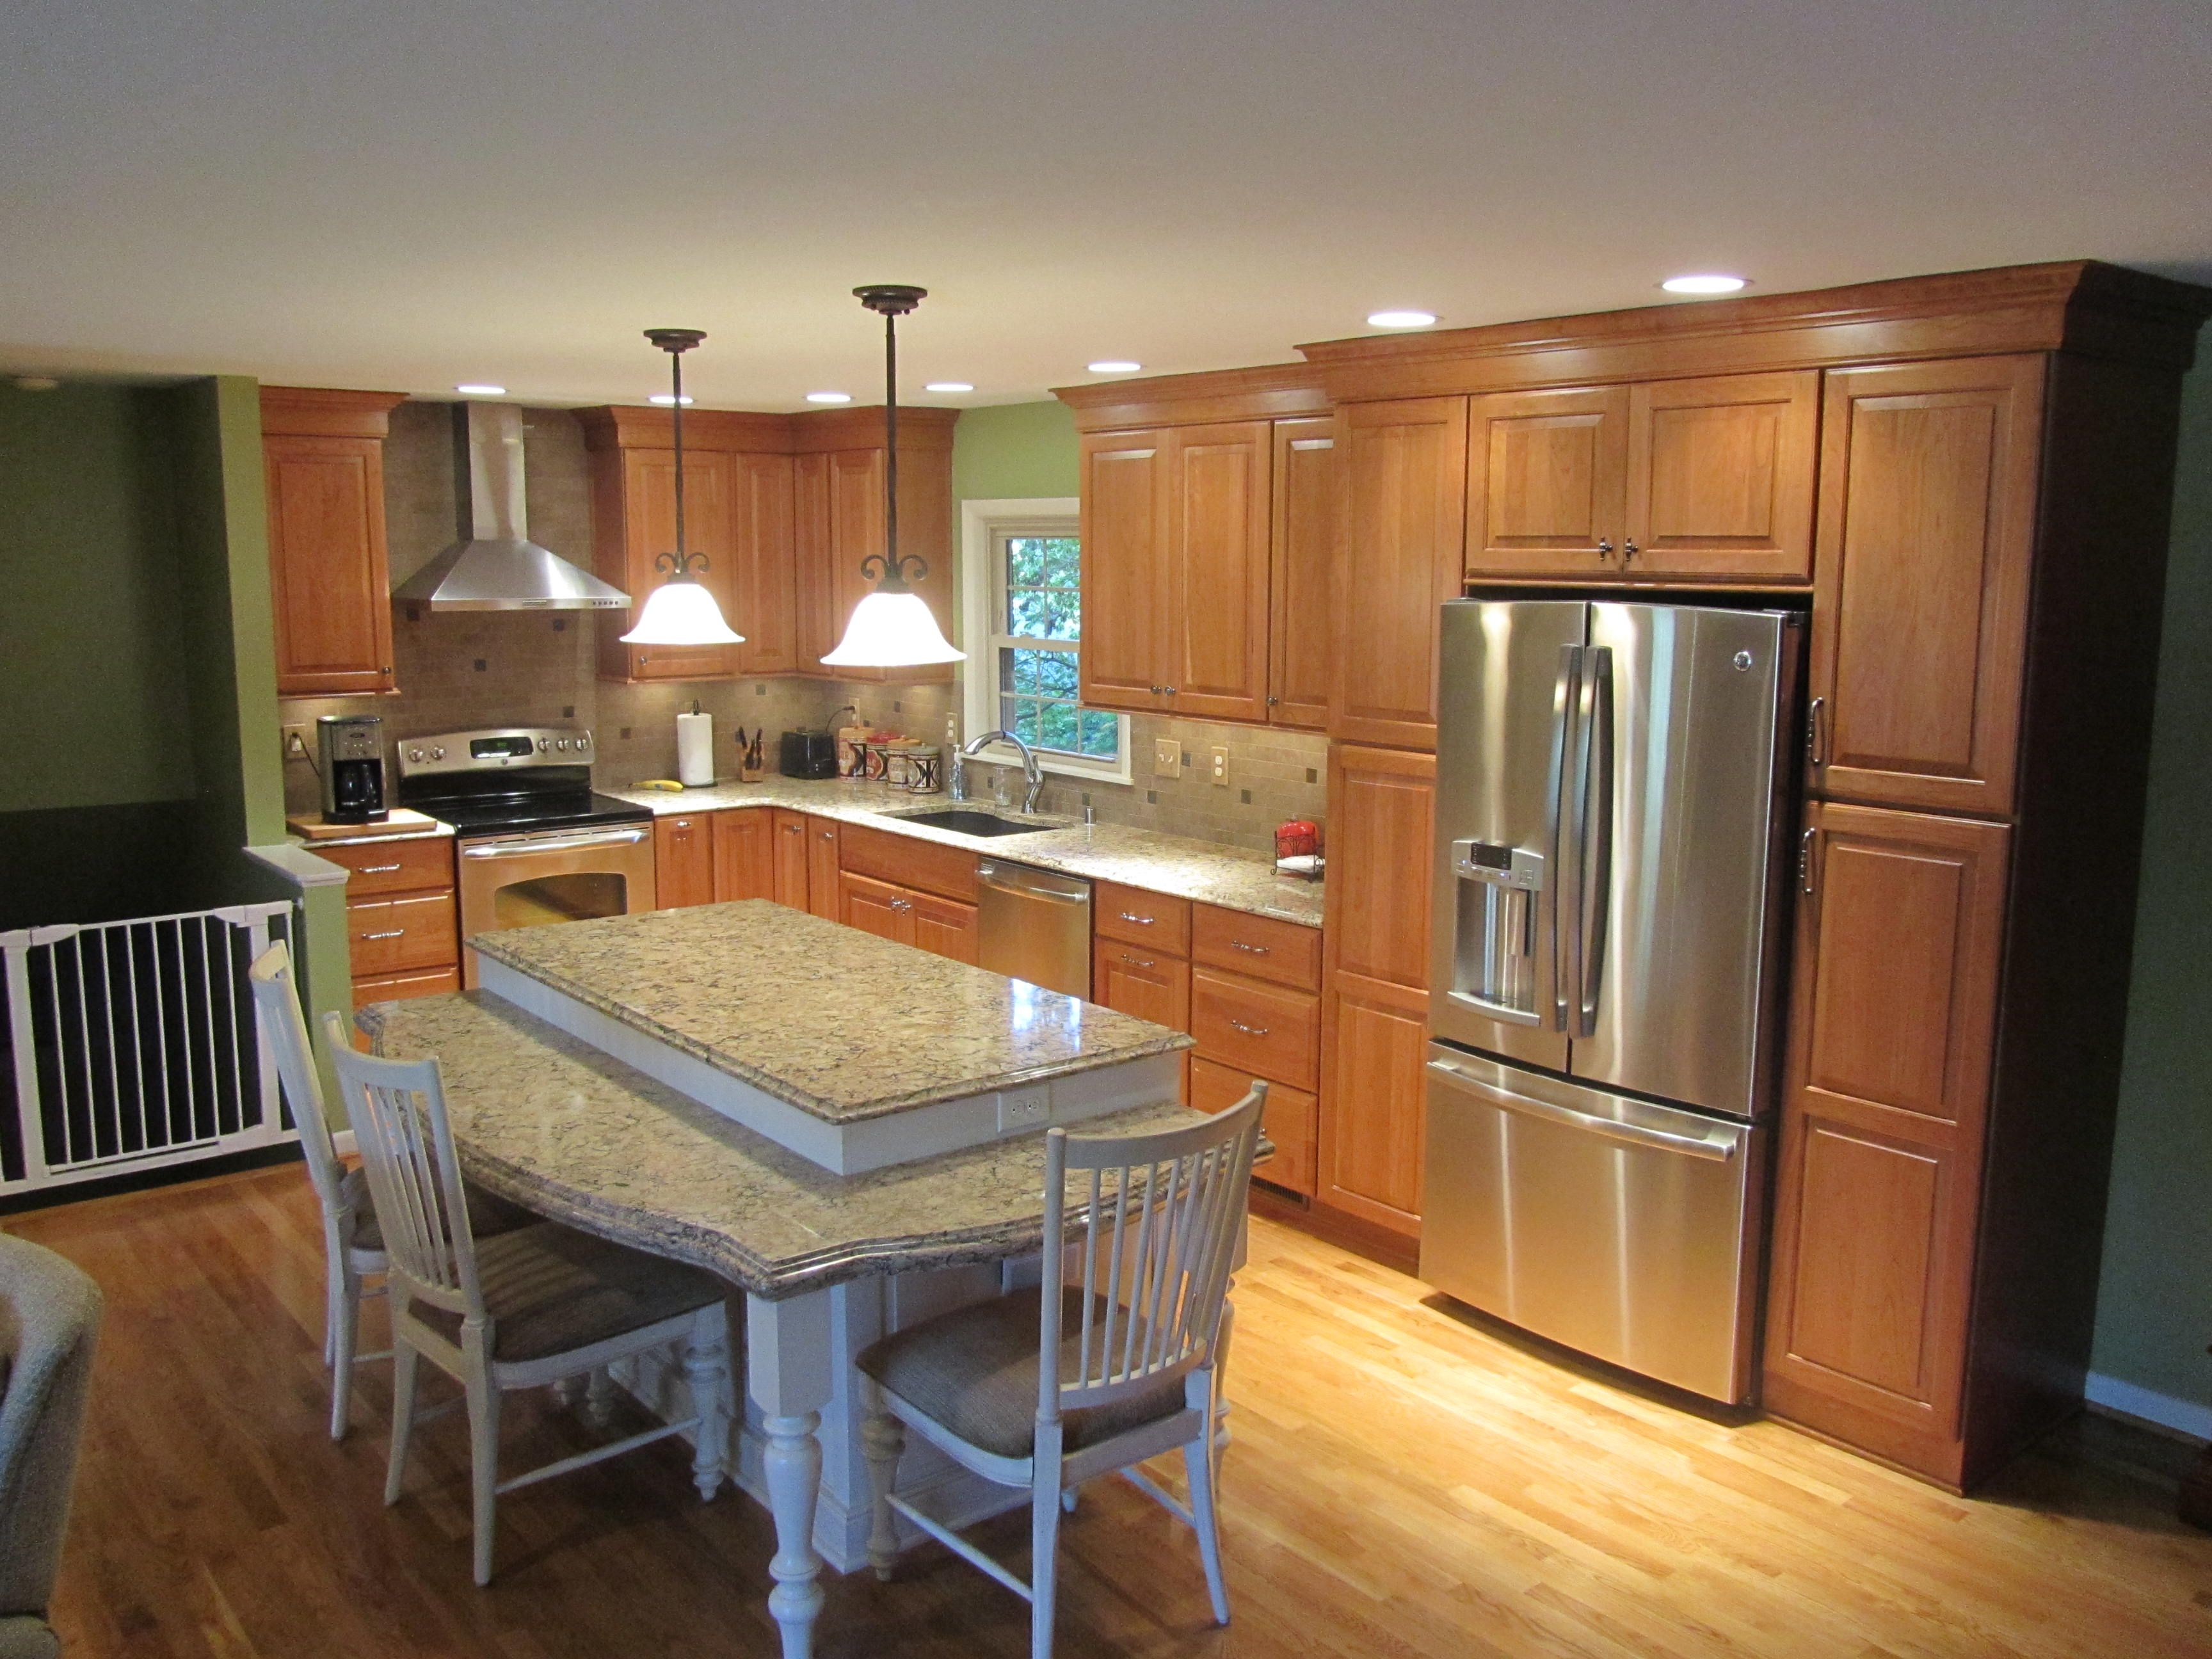 Shiloh cabinetry. Perimeter cabinets are Cherry in a ... on Natural Maple Maple Cabinets With Quartz Countertops  id=38325